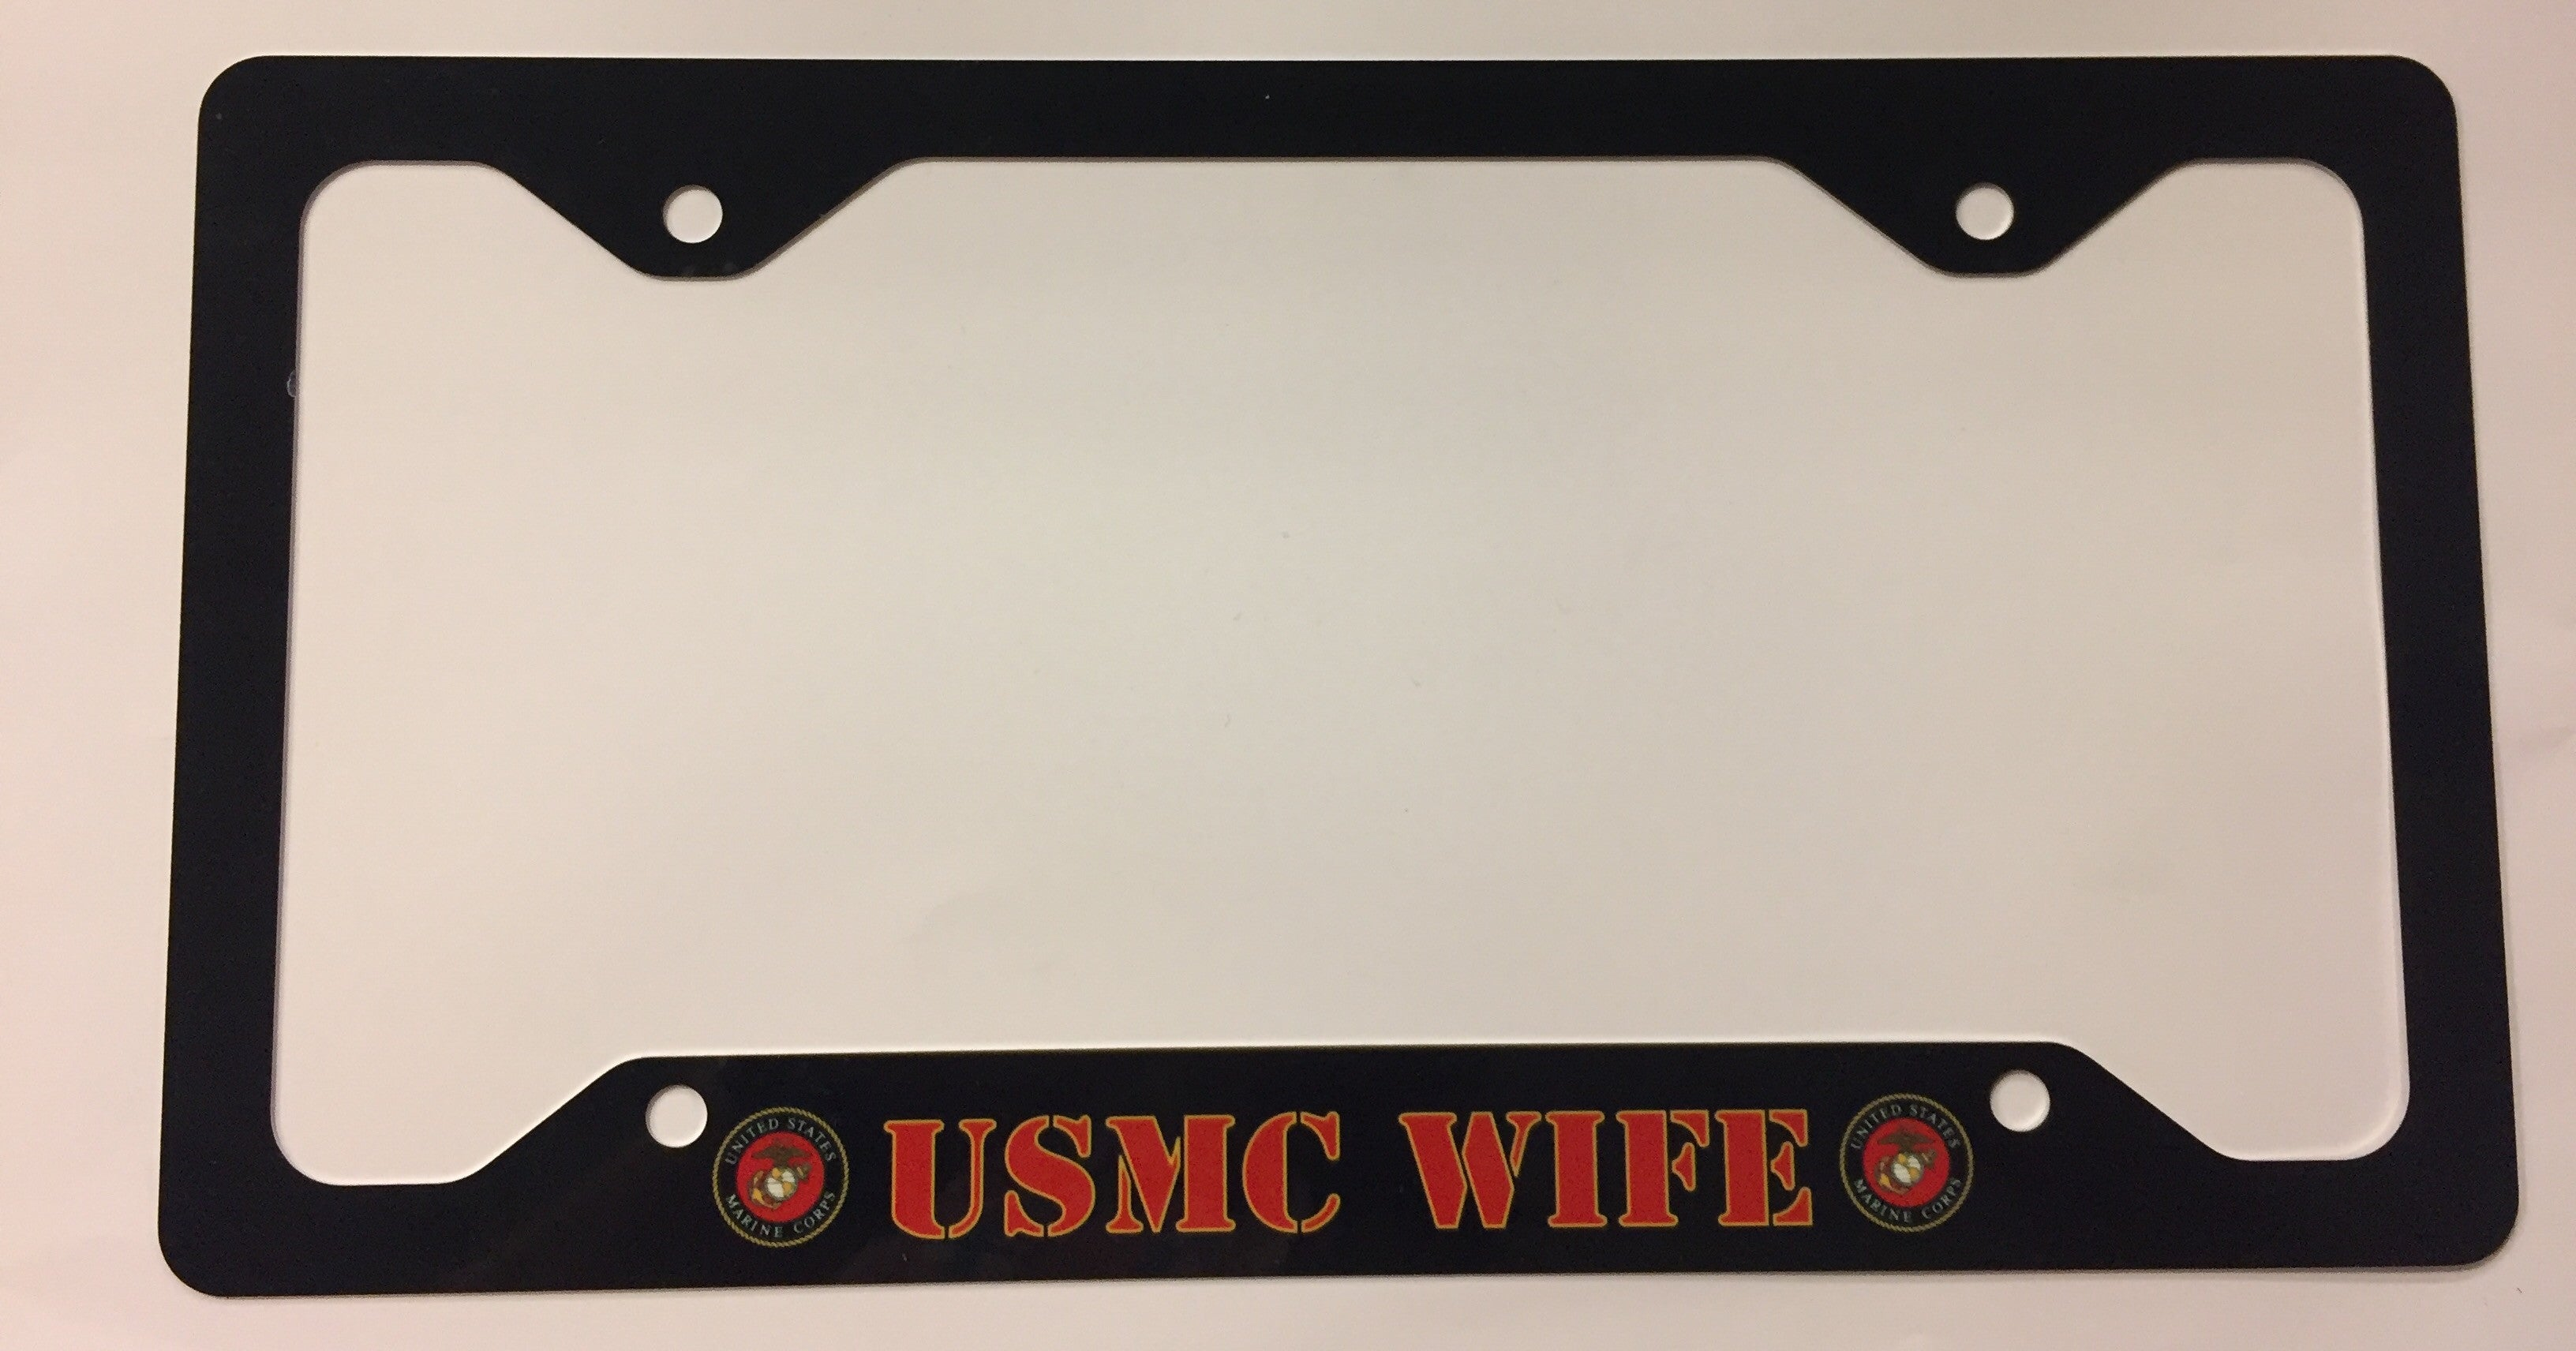 USMC Wife License Plate Frame